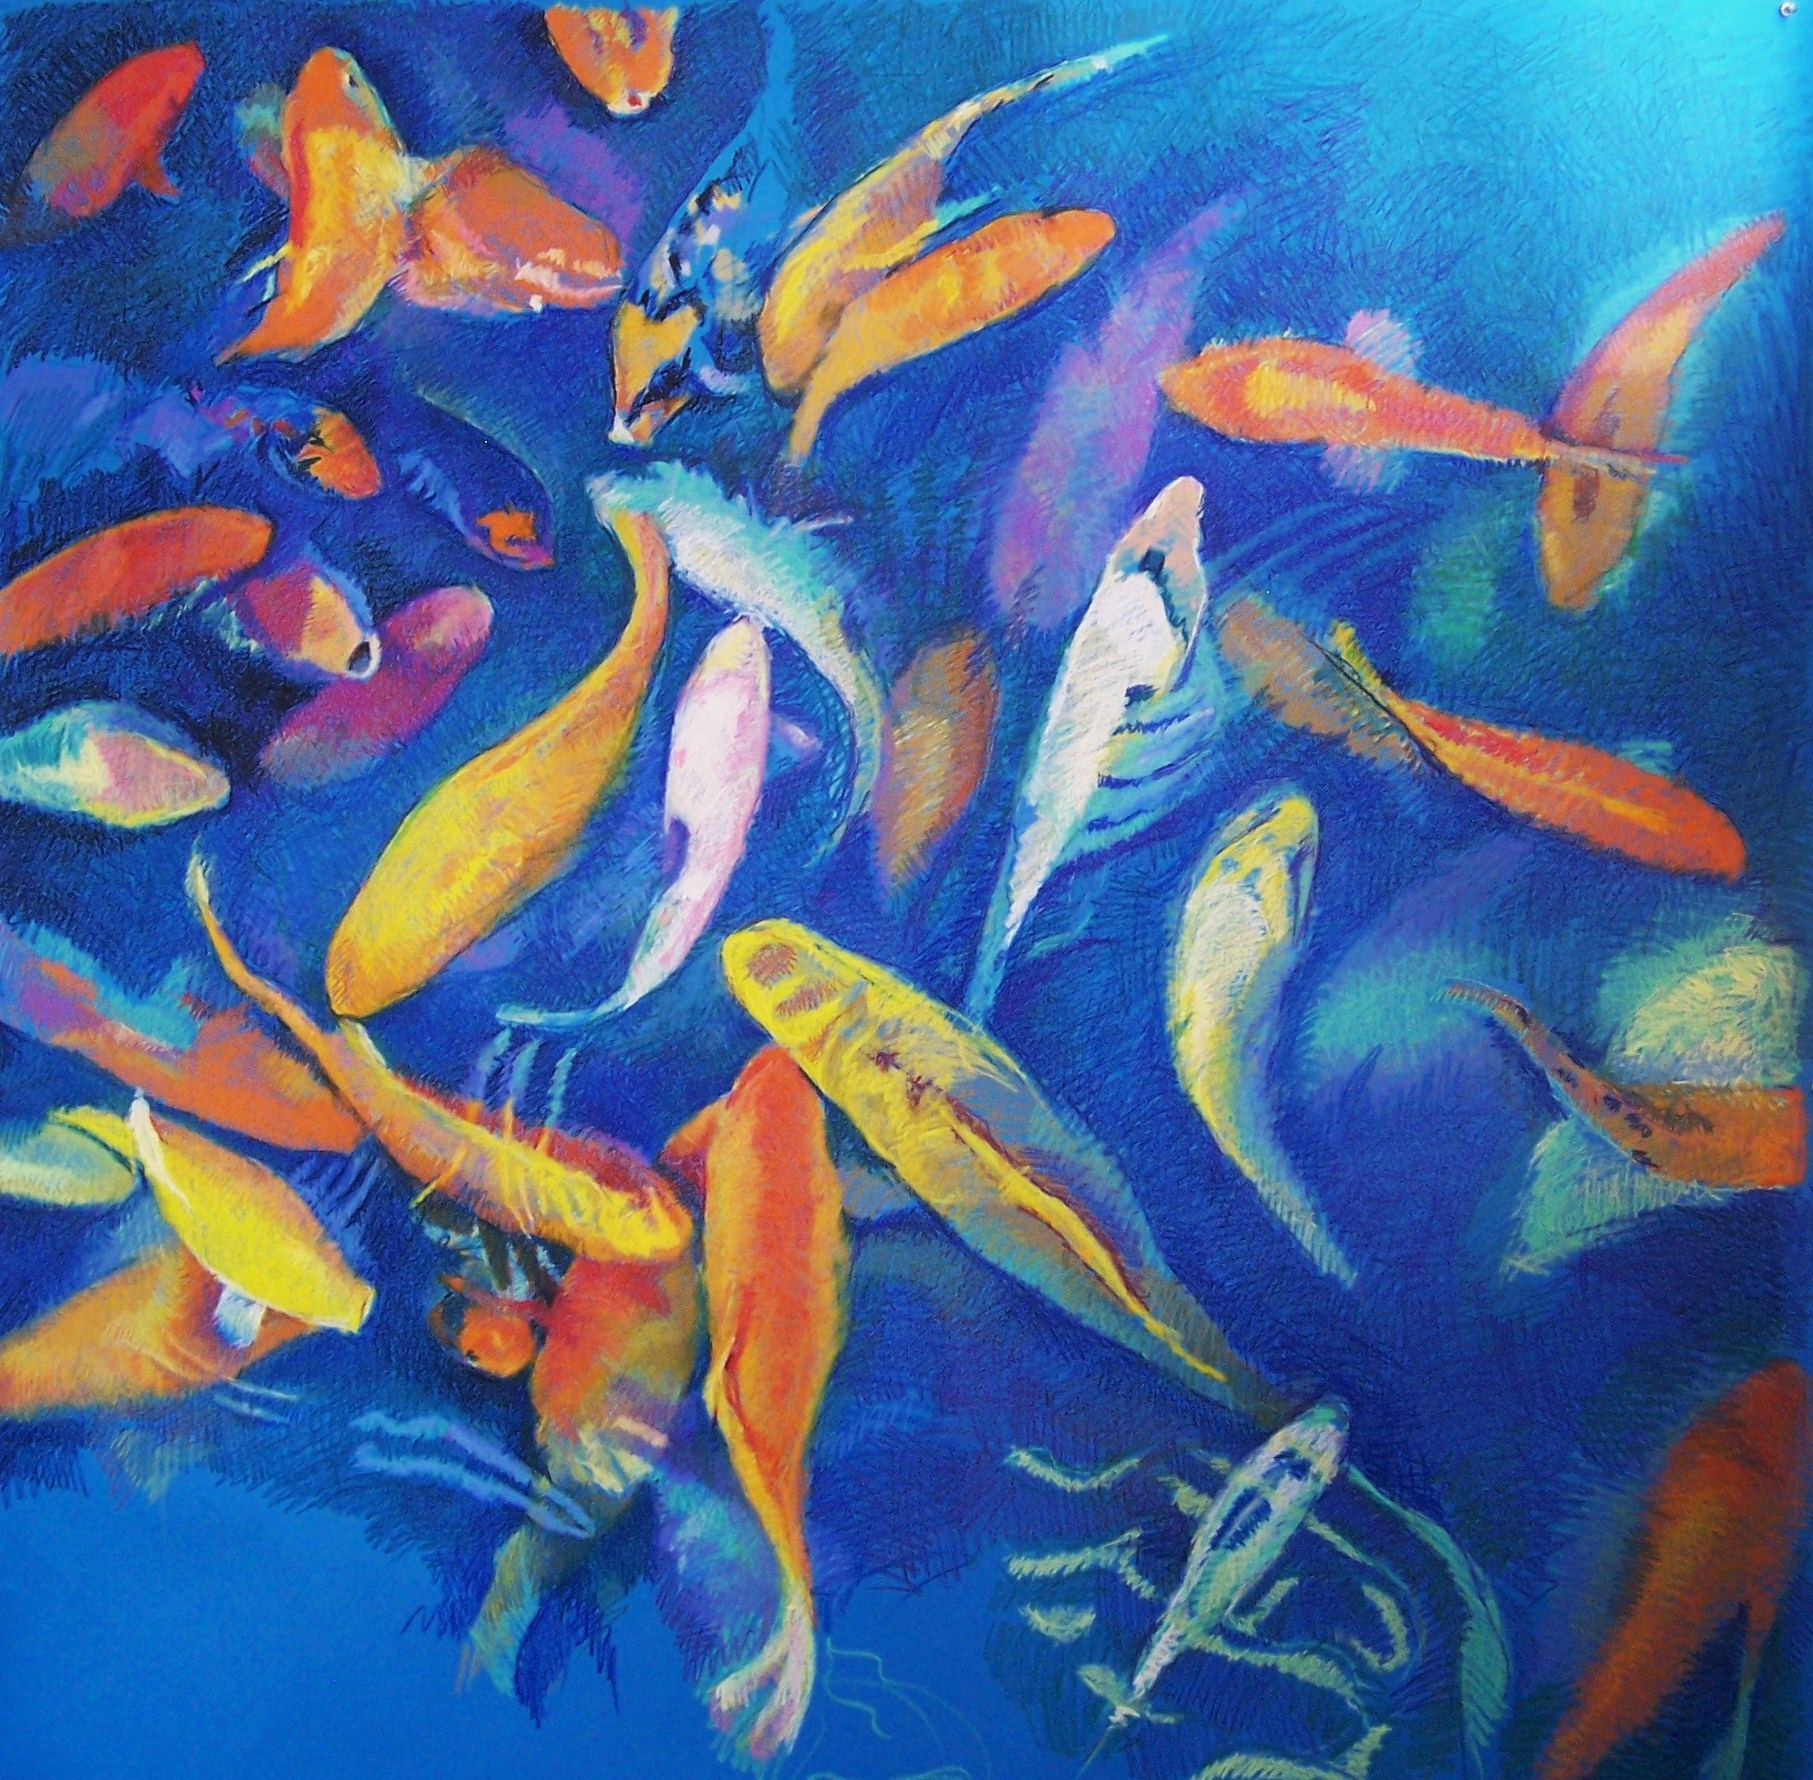 hight resolution of 1813x1780 koi fish drawing